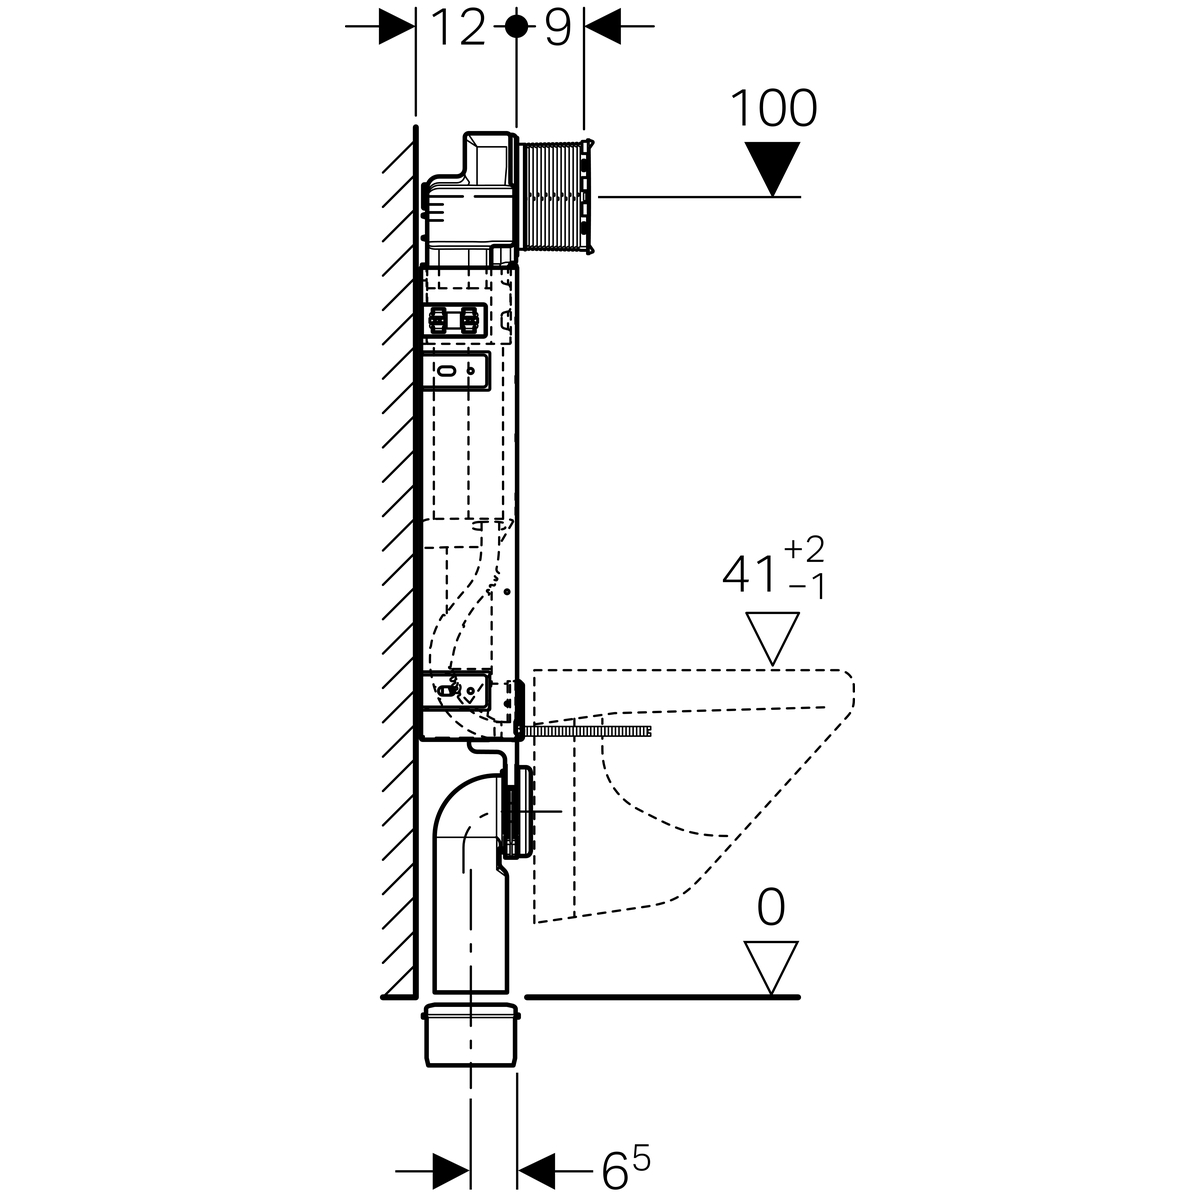 Geberit Kombifix Element For Wall Hung Wc Height 108 Cm With